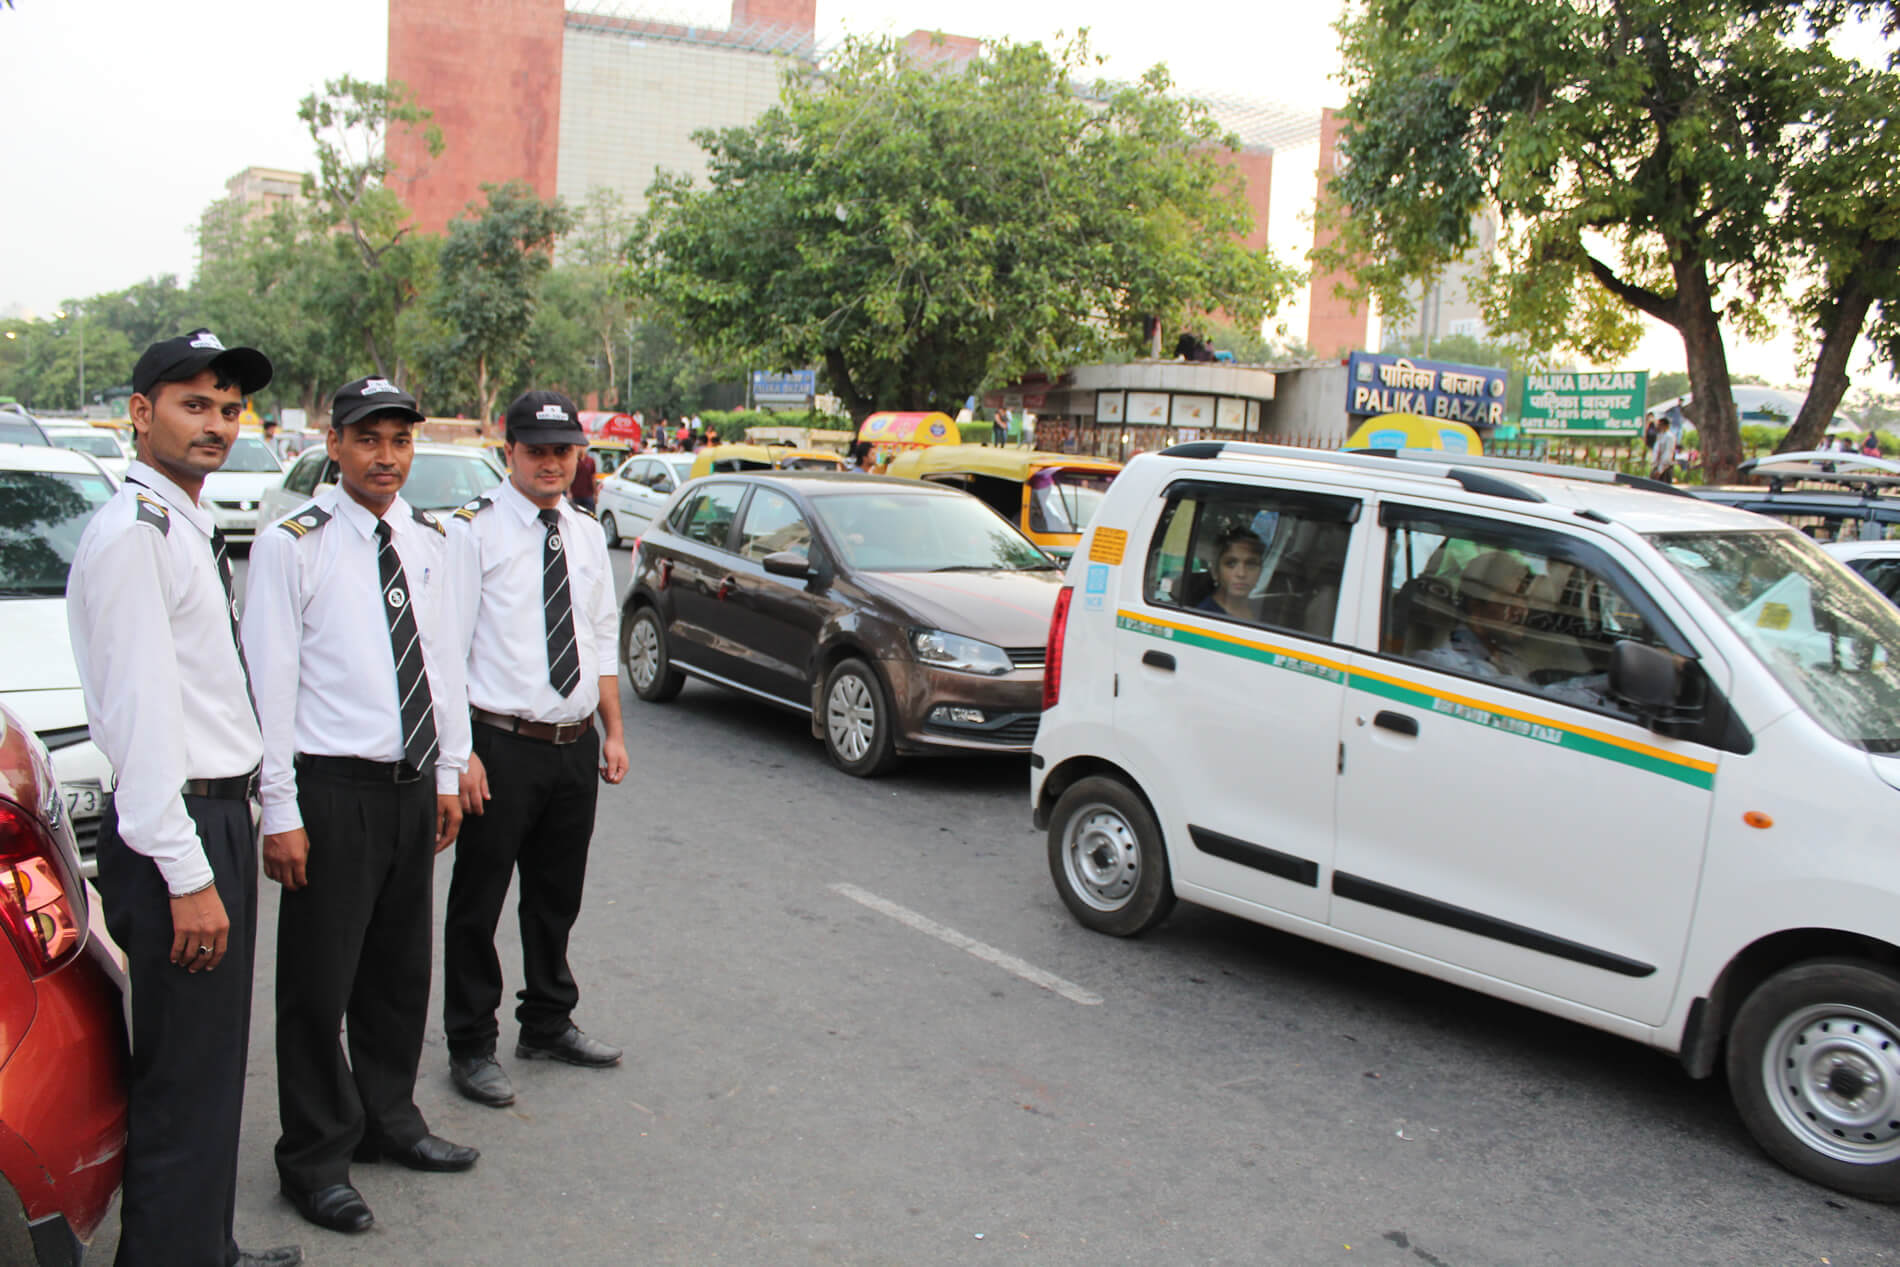 Valet Parking Drivers in Delhi